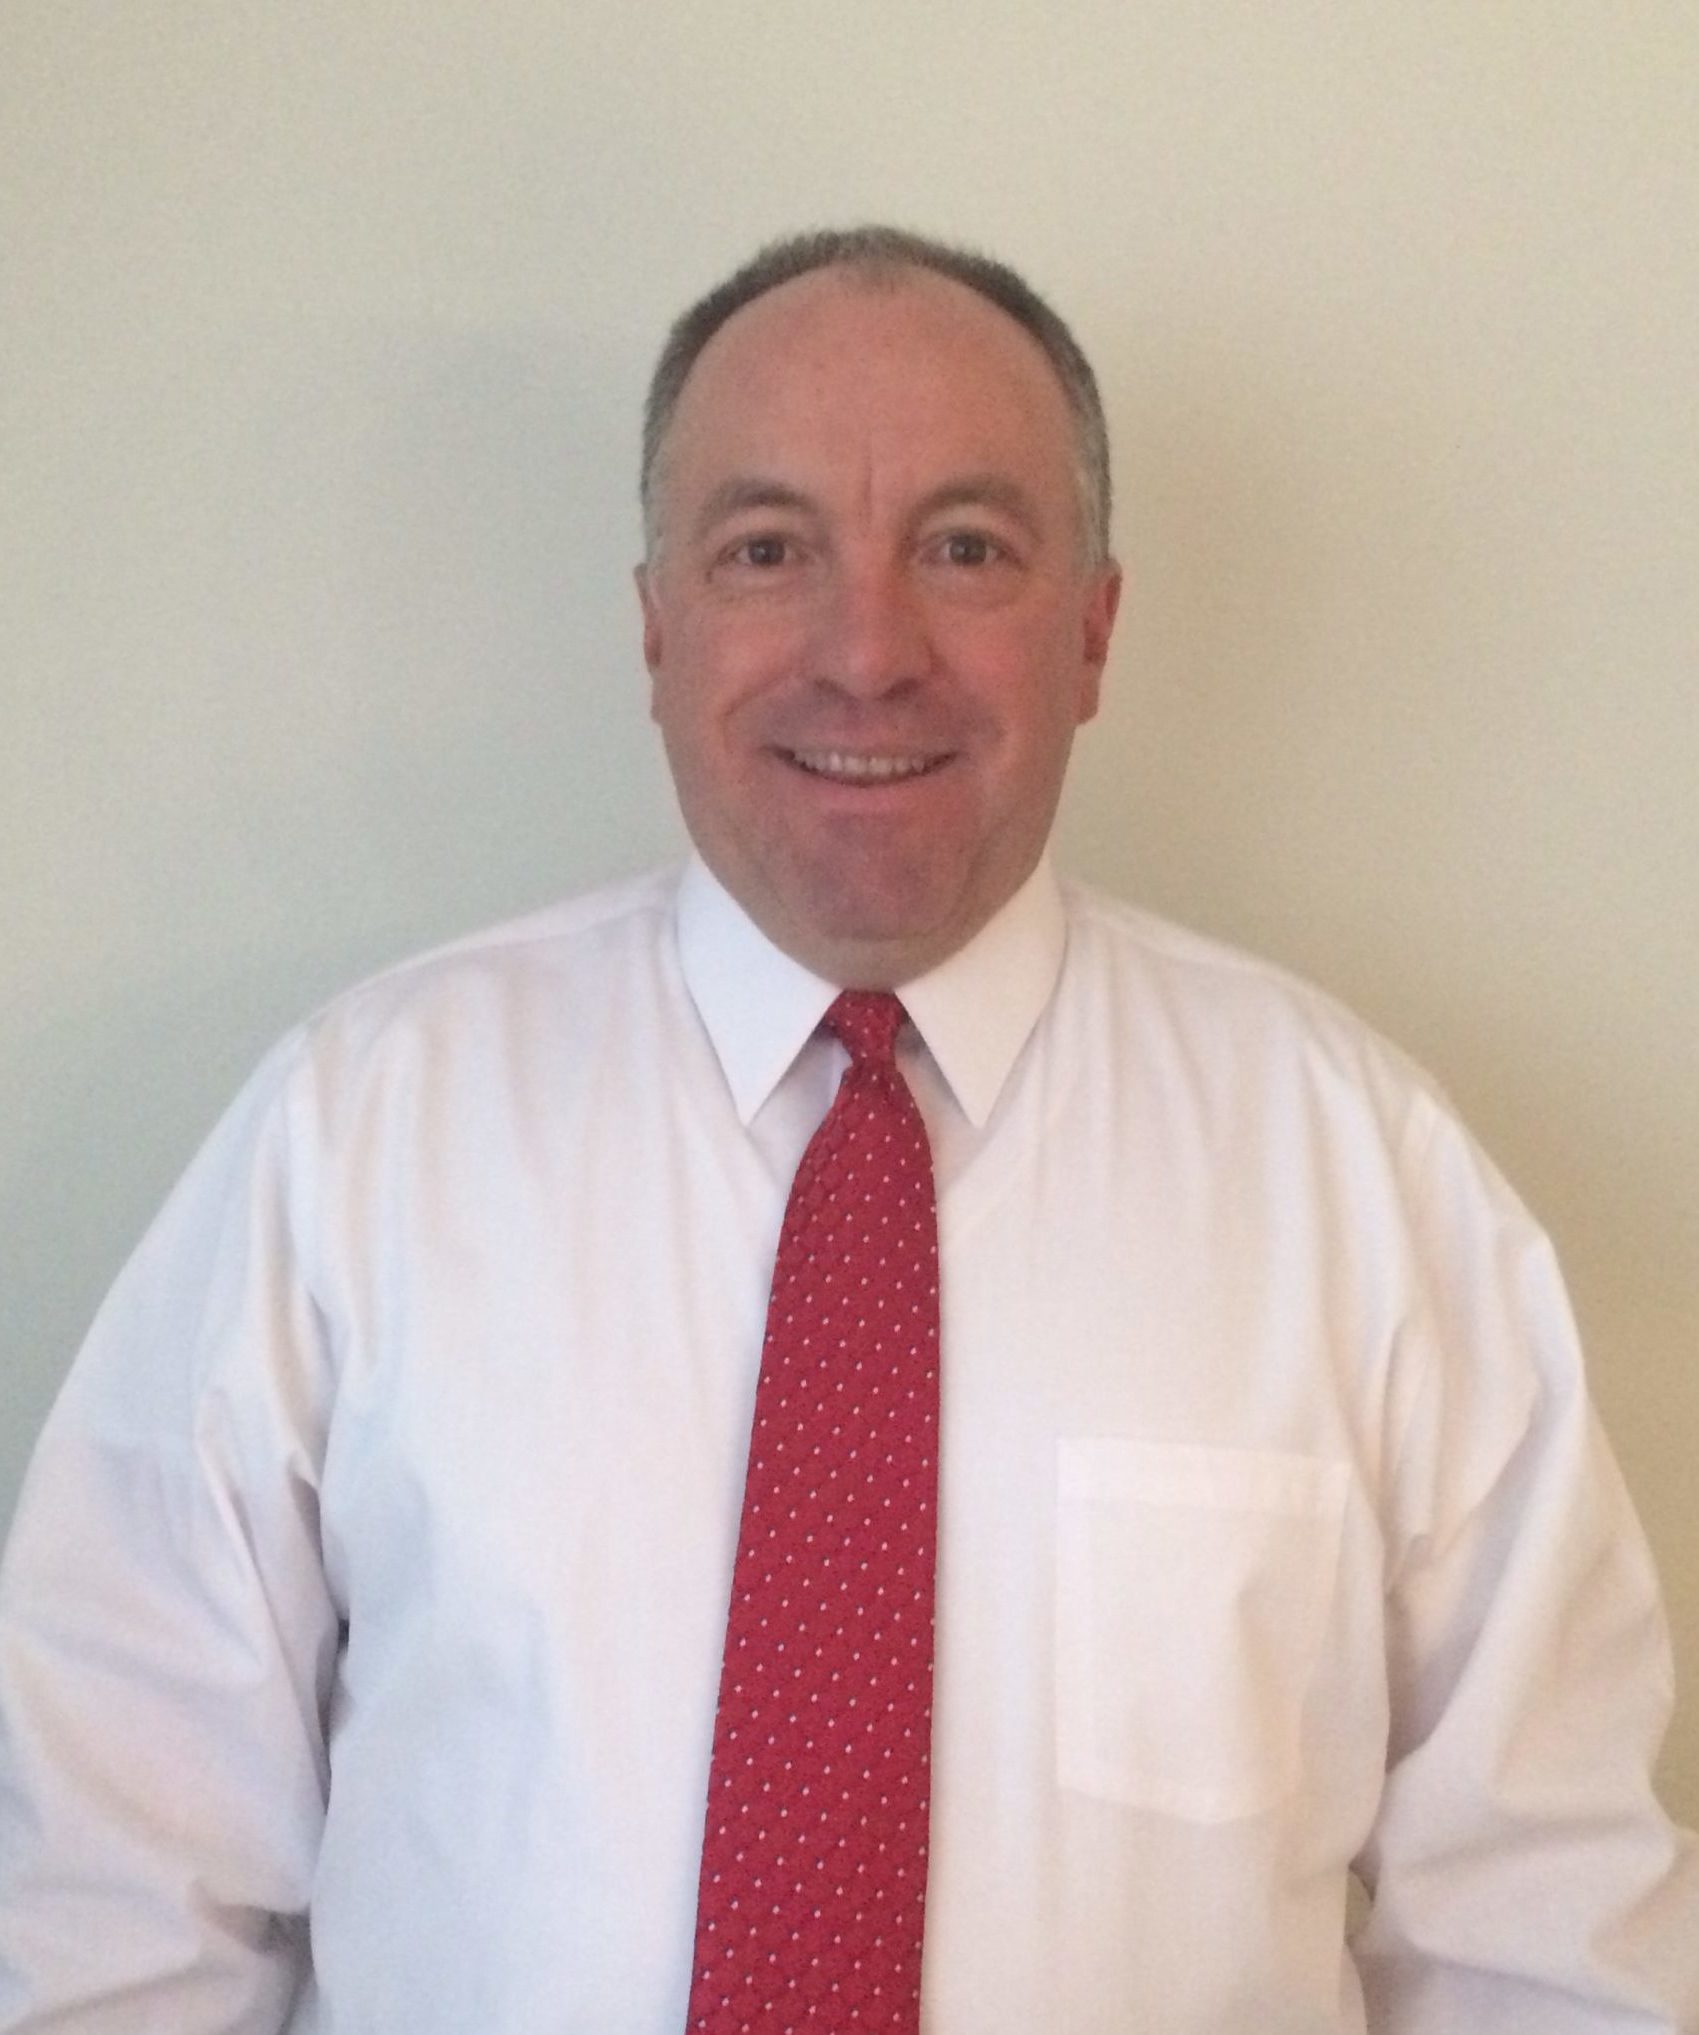 Chris Witter, CPA